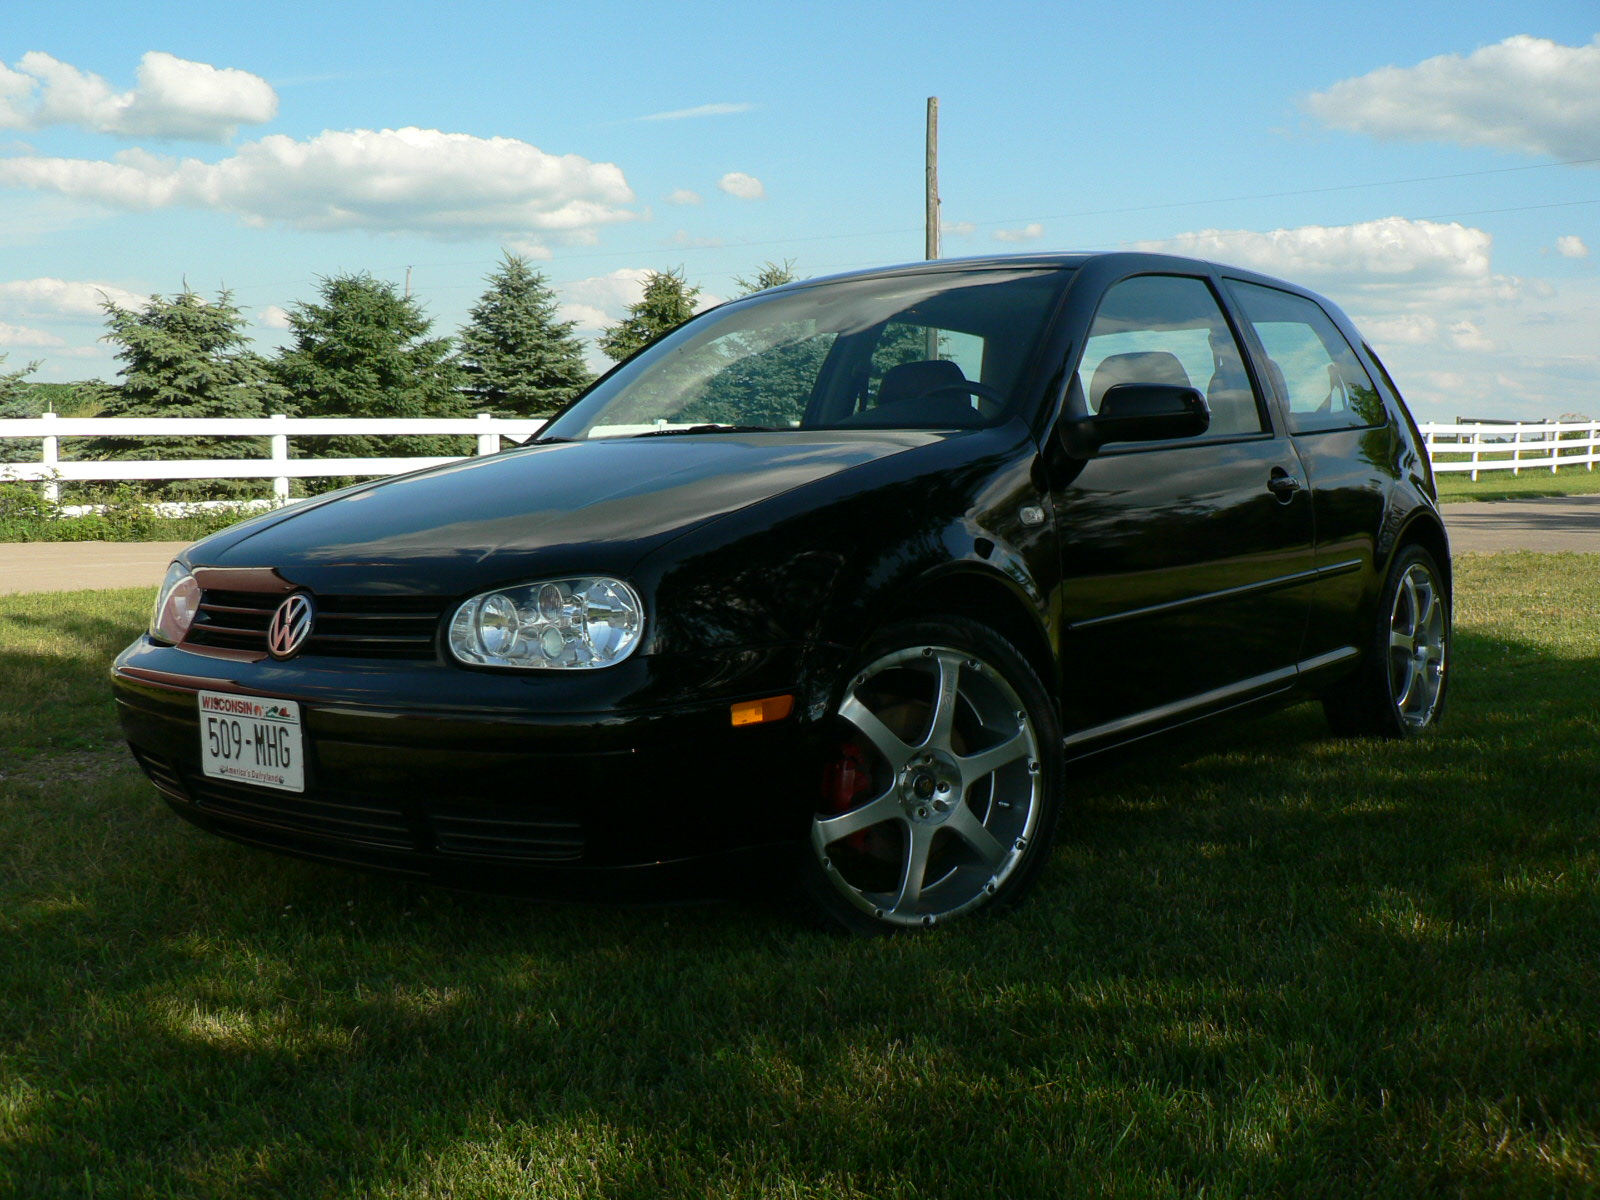 2000 vw jetta interior with 2000 Volkswagen Gti Pictures C5895 on 921 Volkswagen Bora 2006 Wallpaper 1 besides 2003 Volkswagen Passat Pictures C5878 pi36579254 in addition 2005 Volkswagen Passat Gls Tdi Pictures T23841 pi15915857 furthermore Cars Ads 1980s besides 2011 Optima.